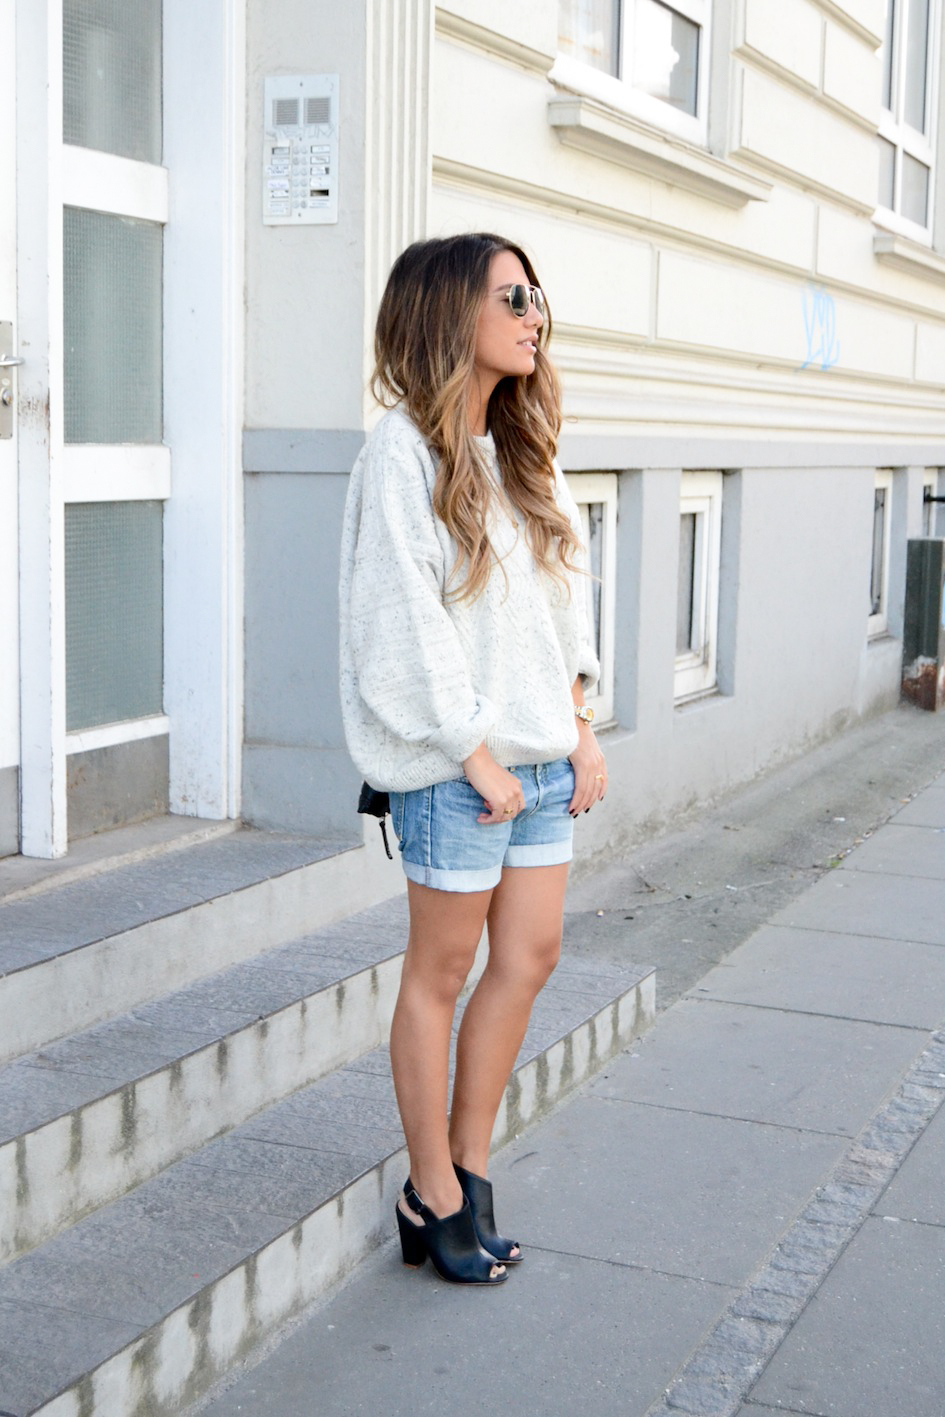 Michelle Nielsen is wearing an oversized beige jumper, denim shorts and mules from H&M